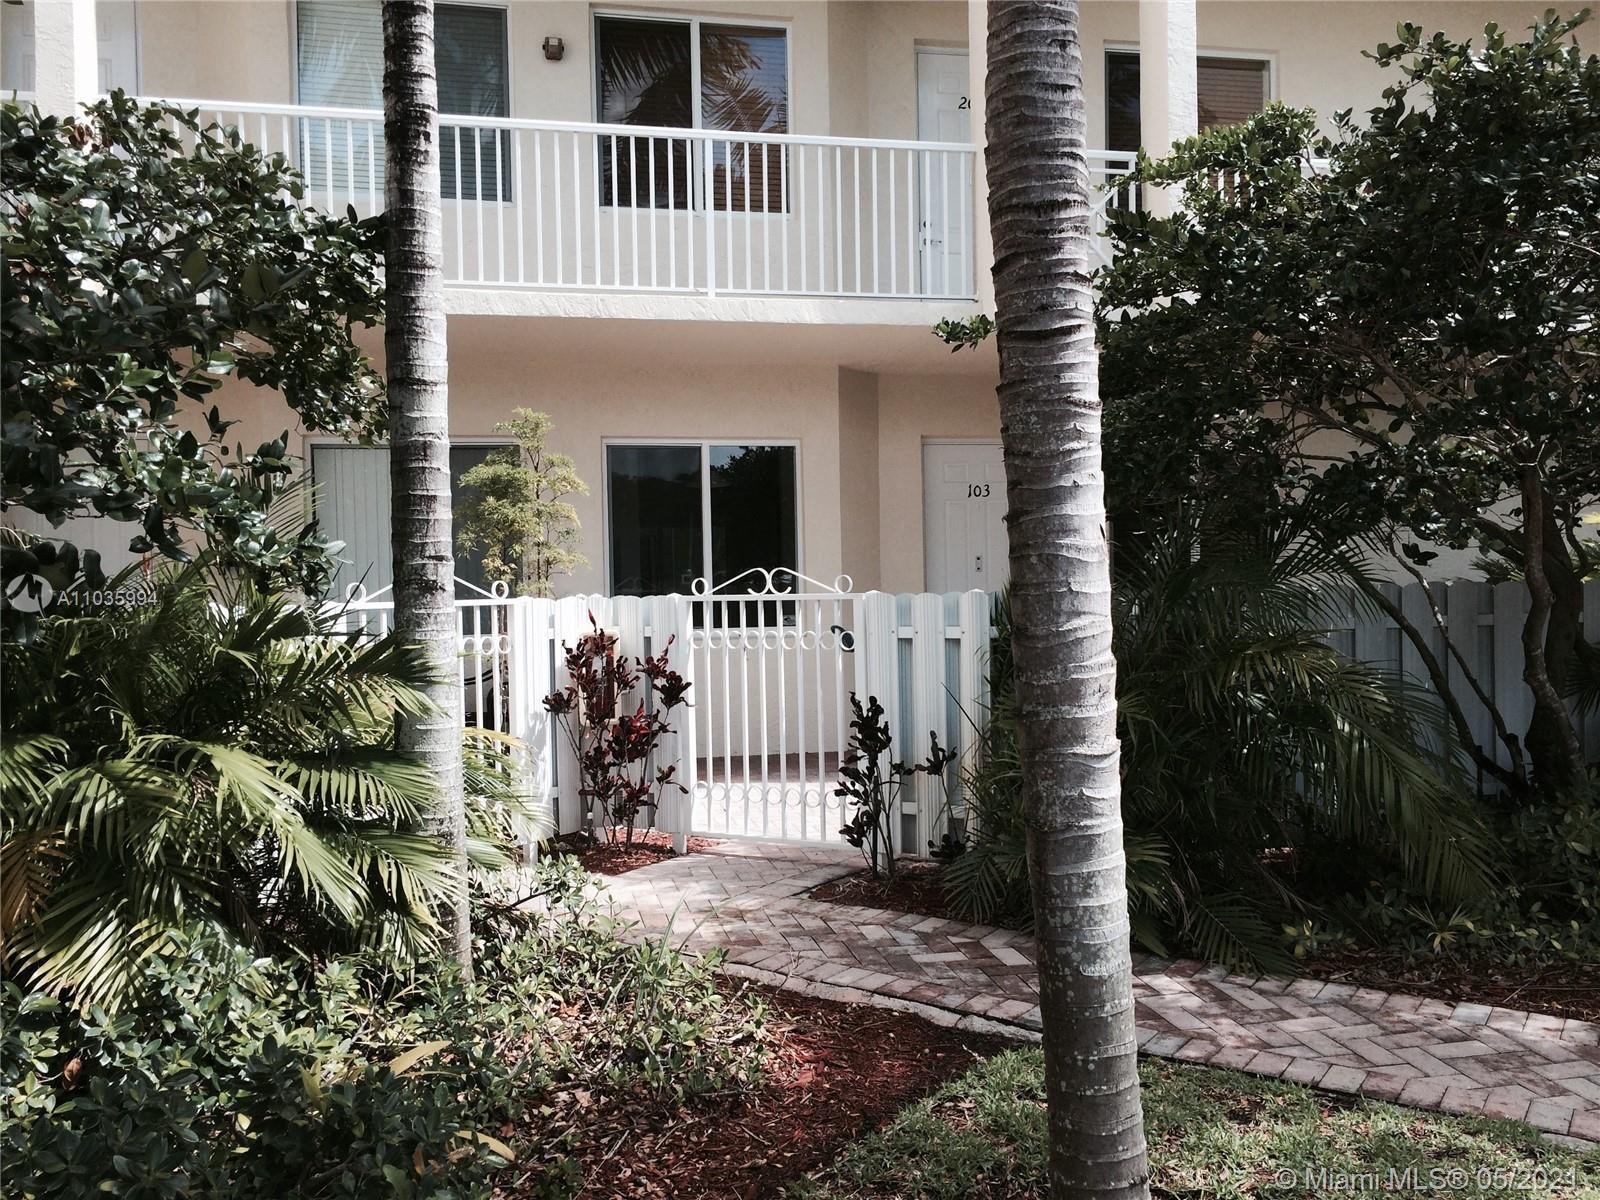 Tenant occupied until 8/1/21. 1st floor unit with private patio and screen porch overlooking the gol